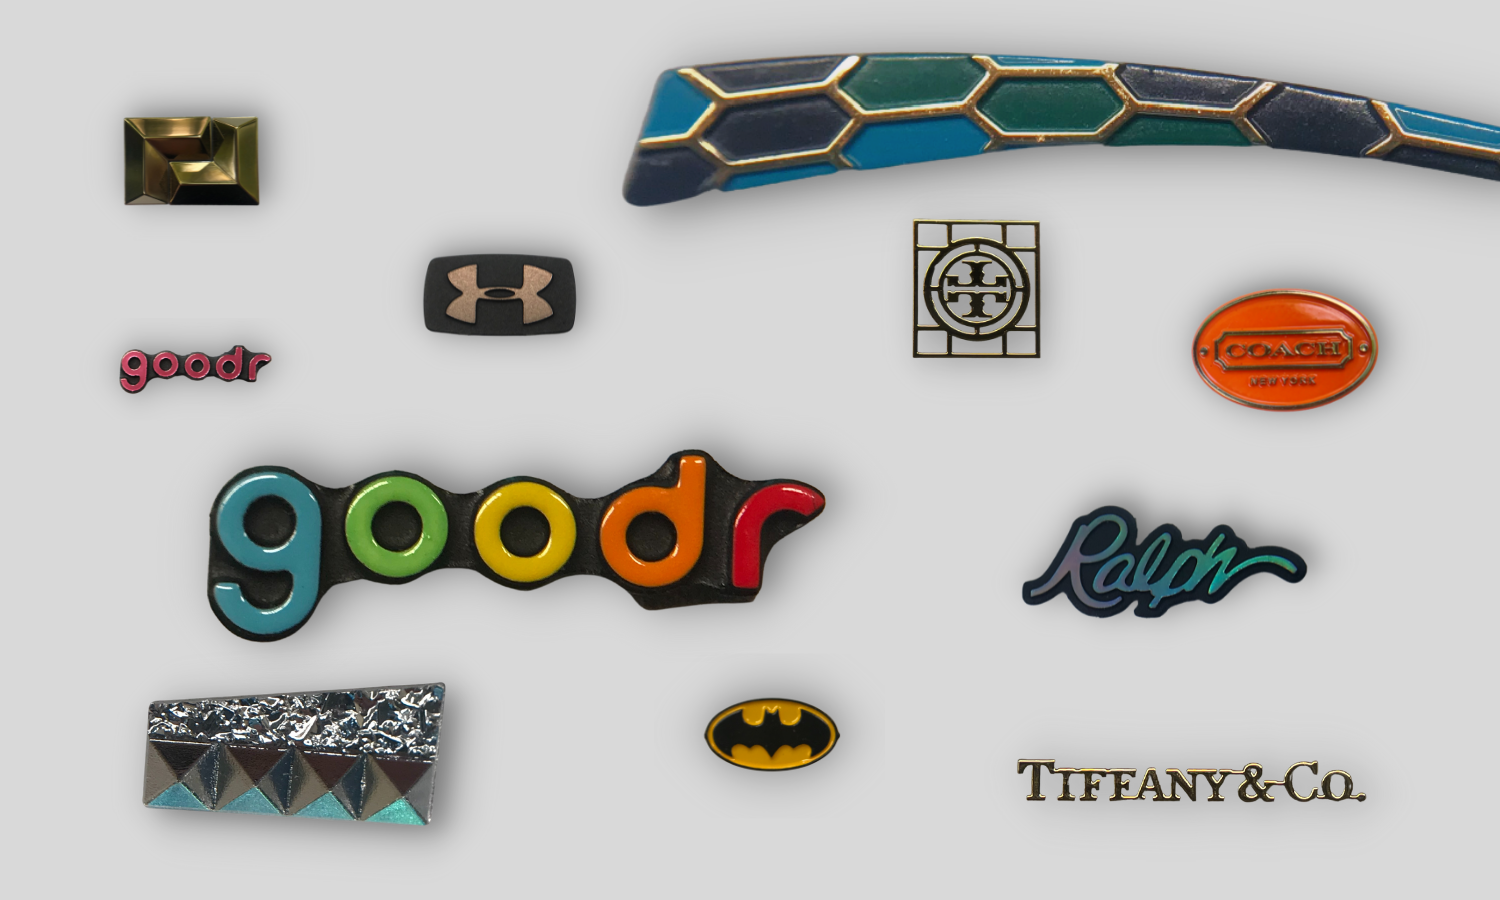 collage of small badges for eyewear: rainbow colored goodr; trans pink goodr; batman symbol, crushed glass/pyramid chrome, tiffany gold letters; tory burch gold letters, coach oval badge with orange background and gold copy, ralph script logo with black background and raised hologram copy, under armour square with black background and raw steel copy, mosaic trim piece with gold bridging and blue and green pieces